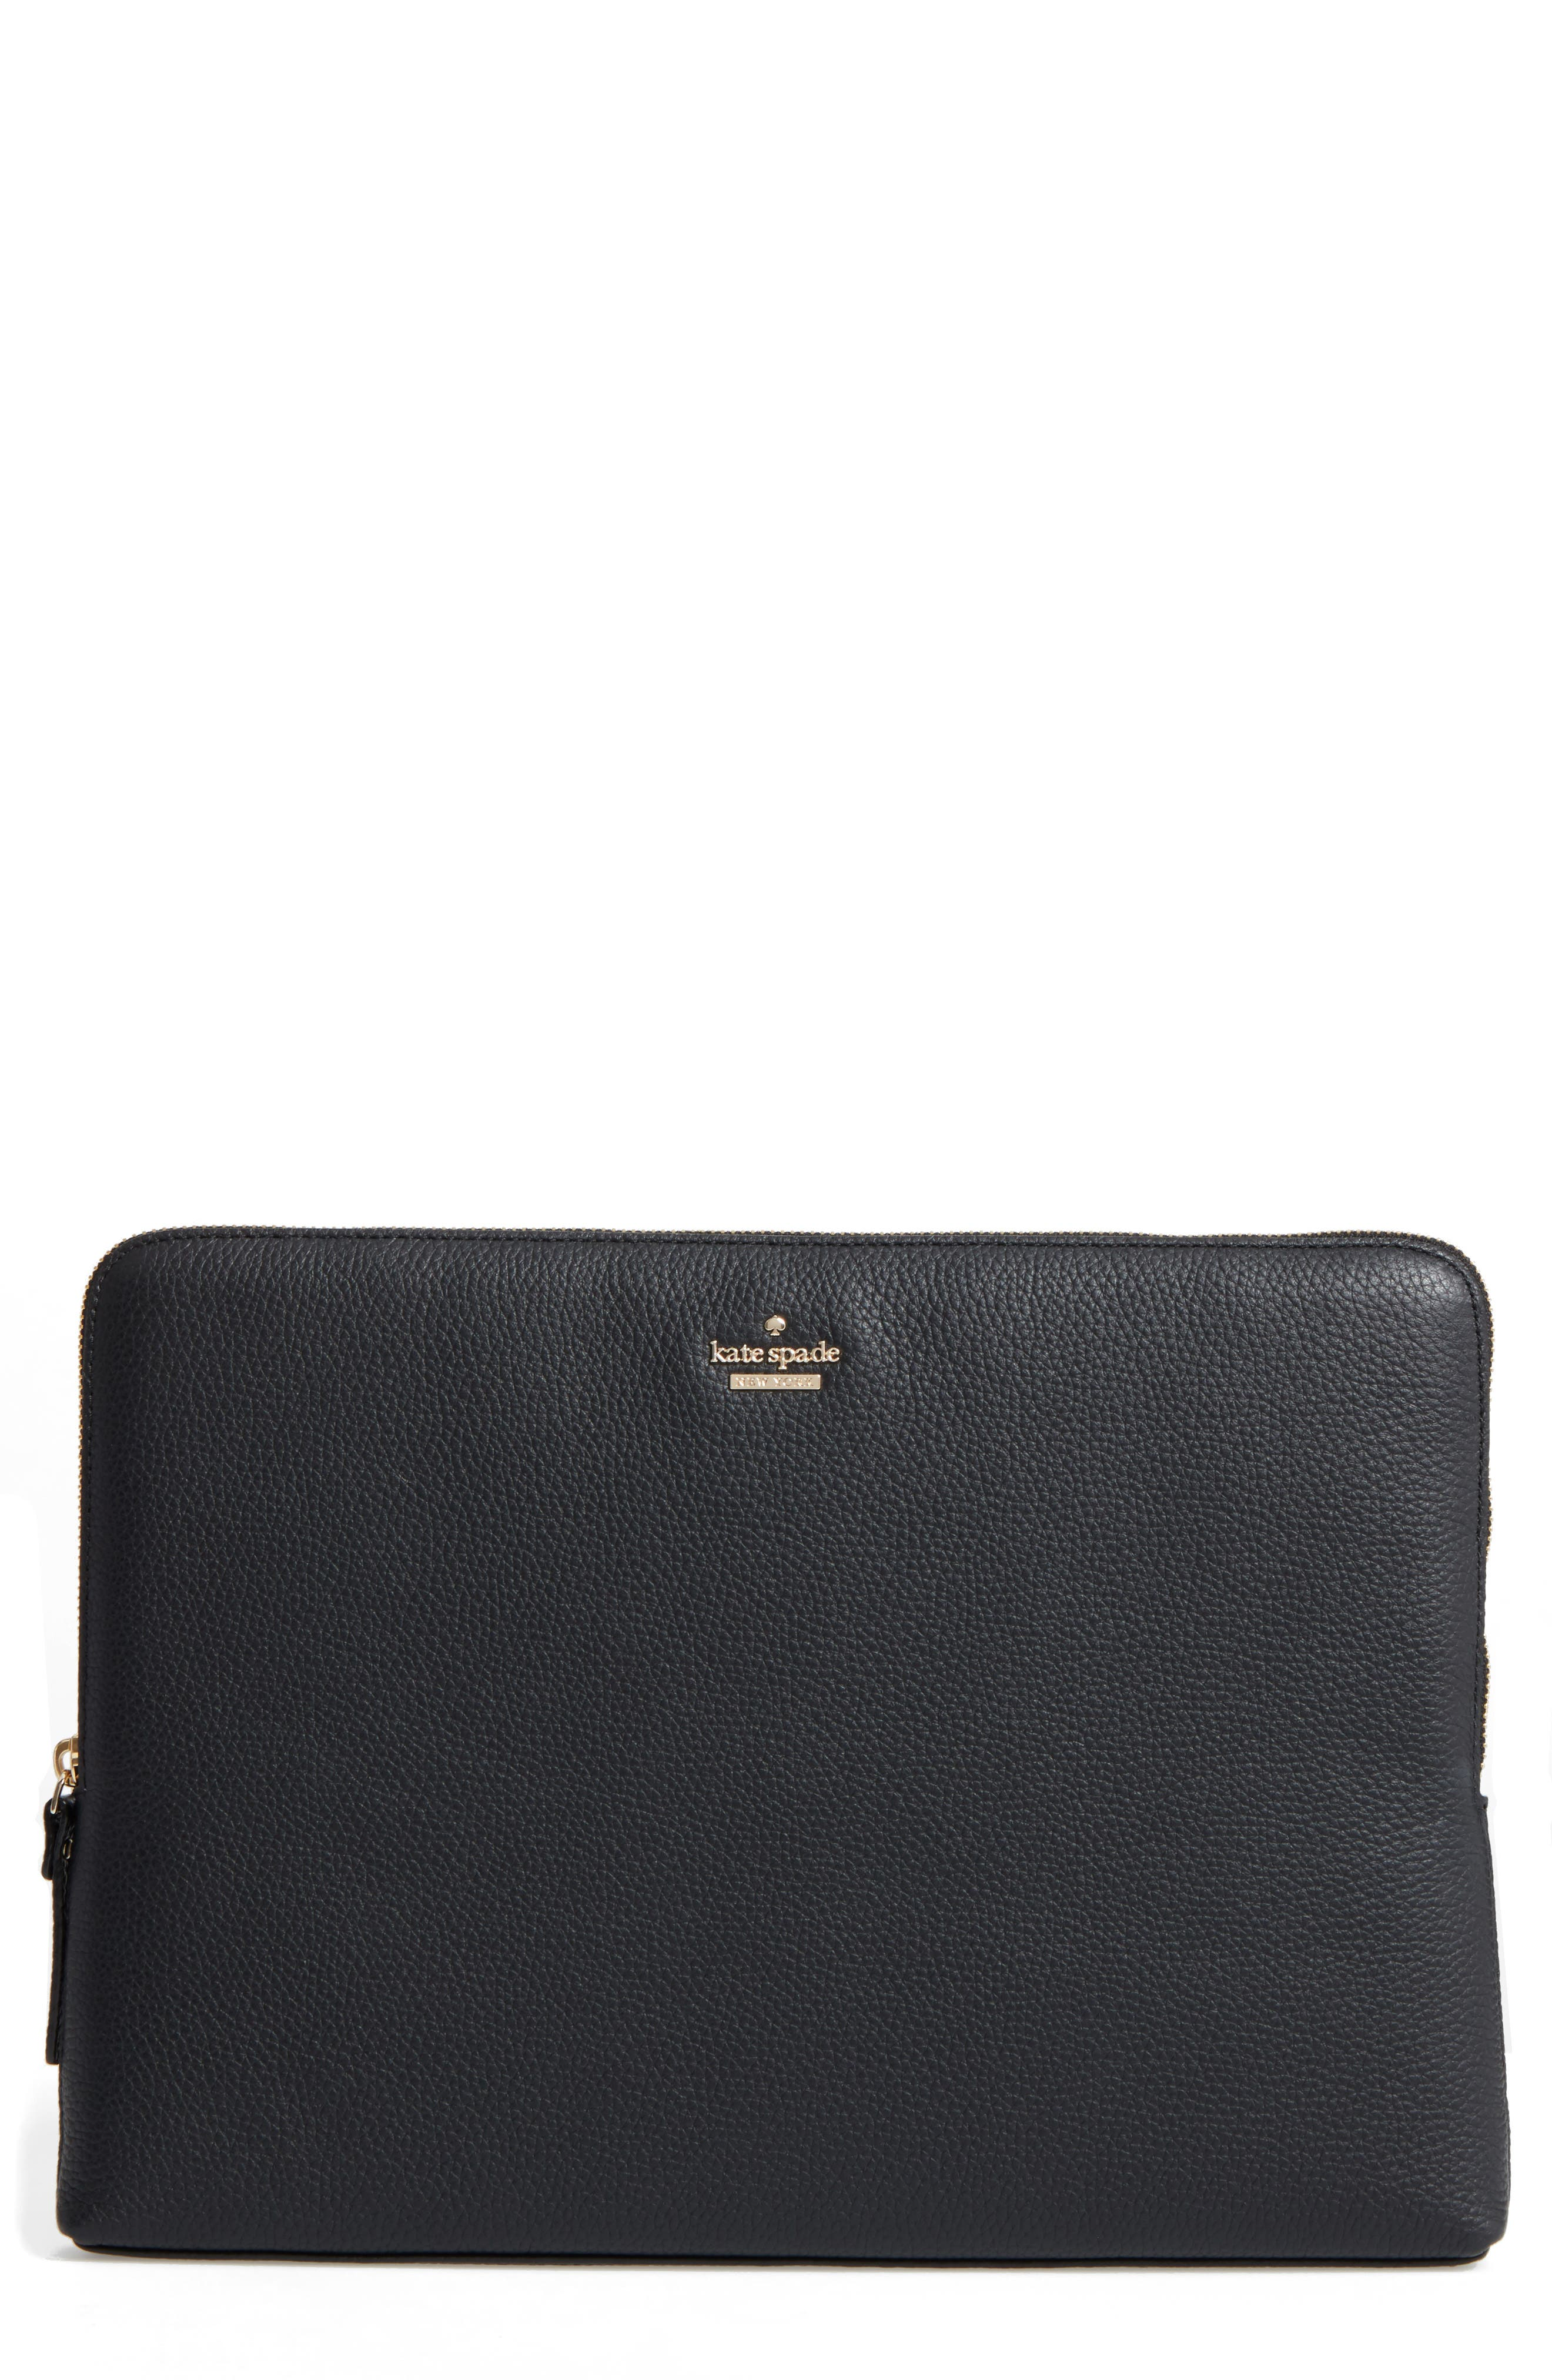 13-inch leather laptop sleeve,                         Main,                         color, BLACK